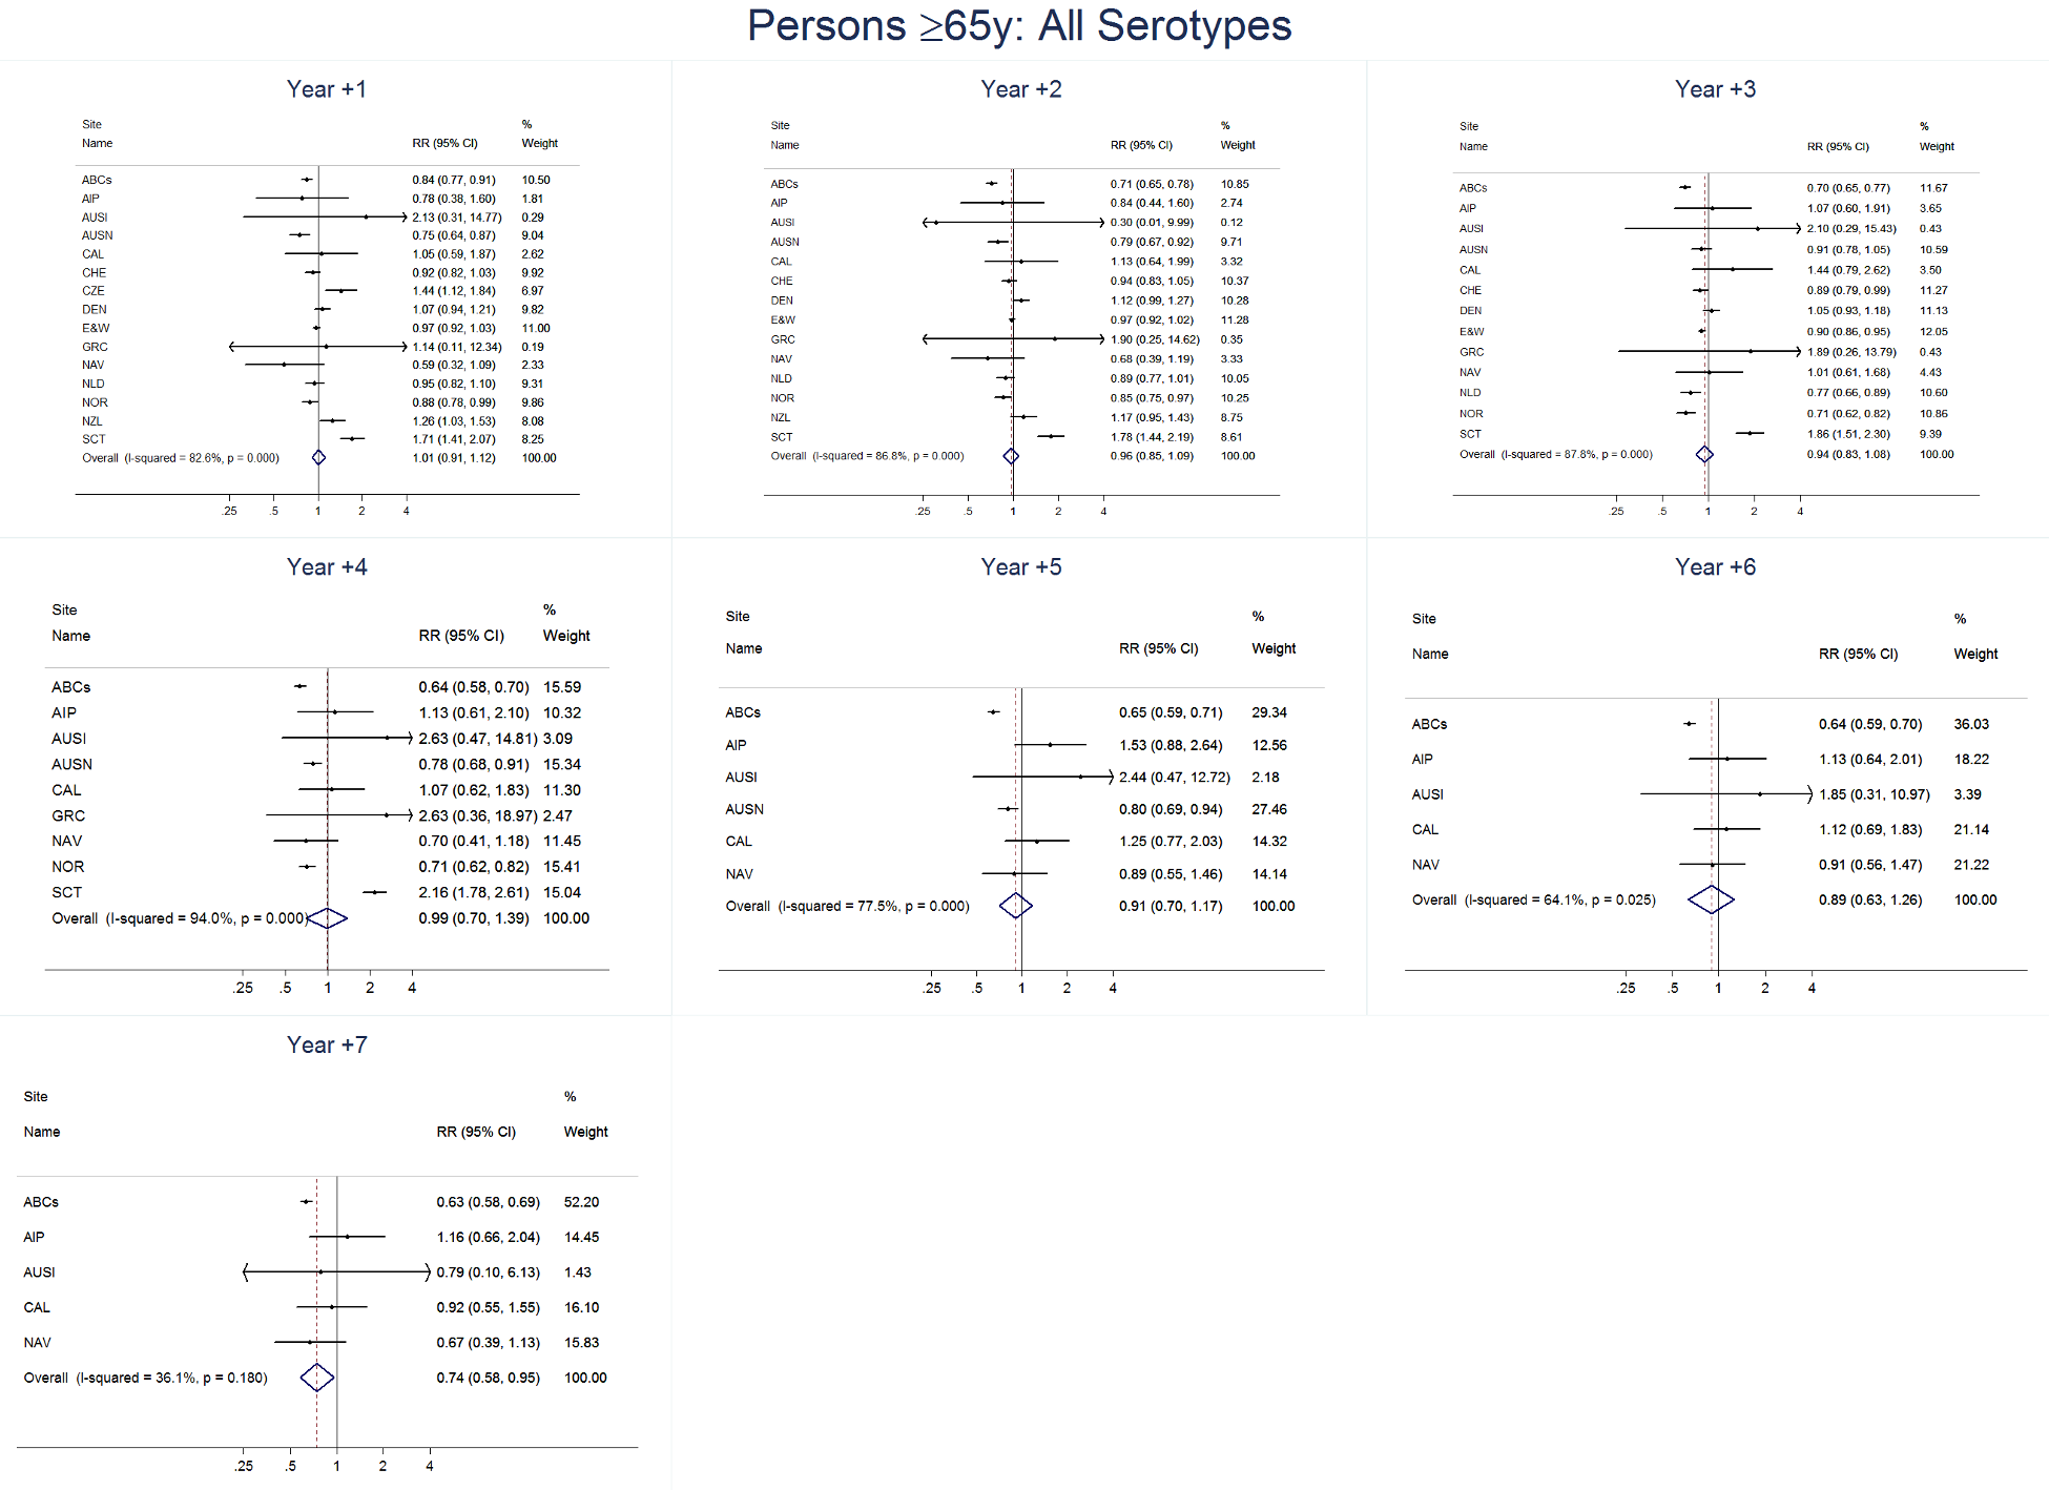 All serotype invasive pneumococcal disease summary rate ratio forest plots by post-introduction year from random effects meta-analysis for adults aged ≥65 years.